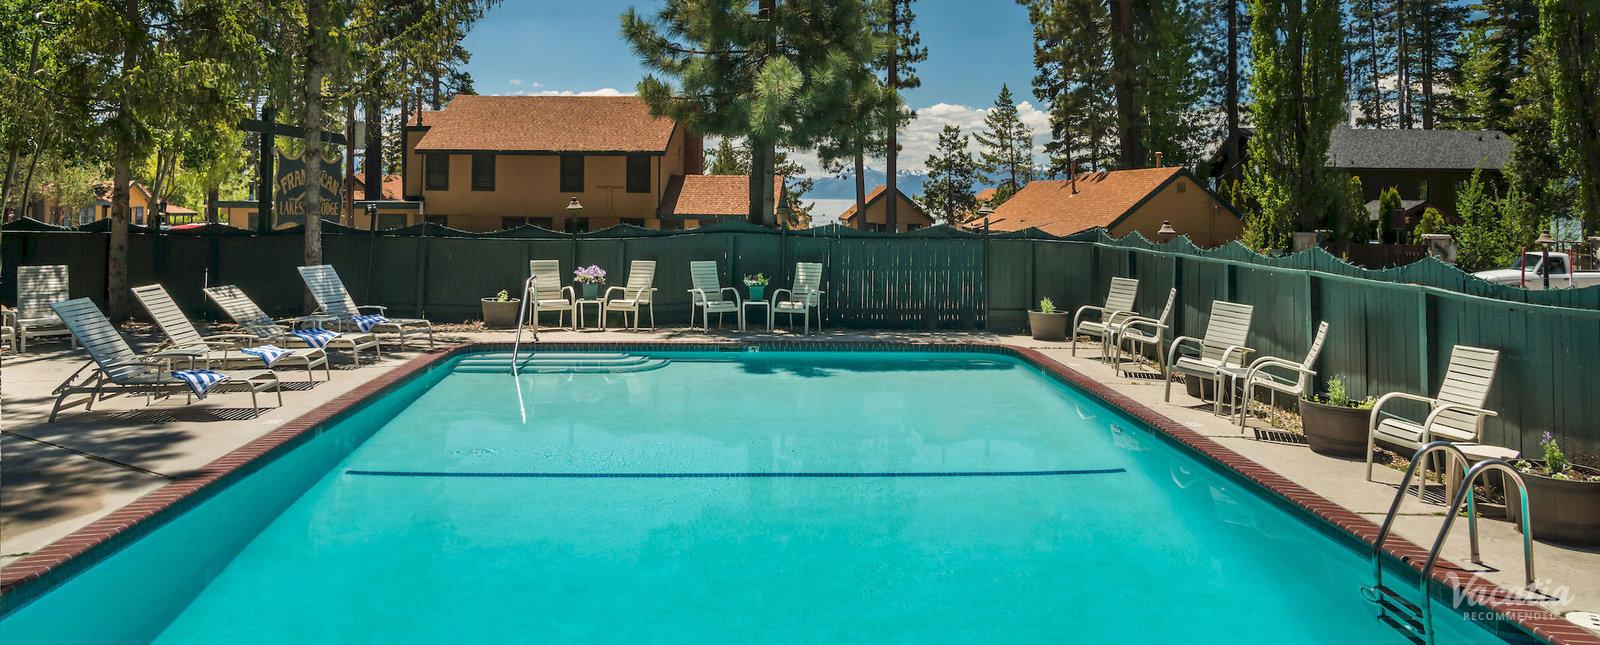 Franciscan Lakeside Lodge Pool